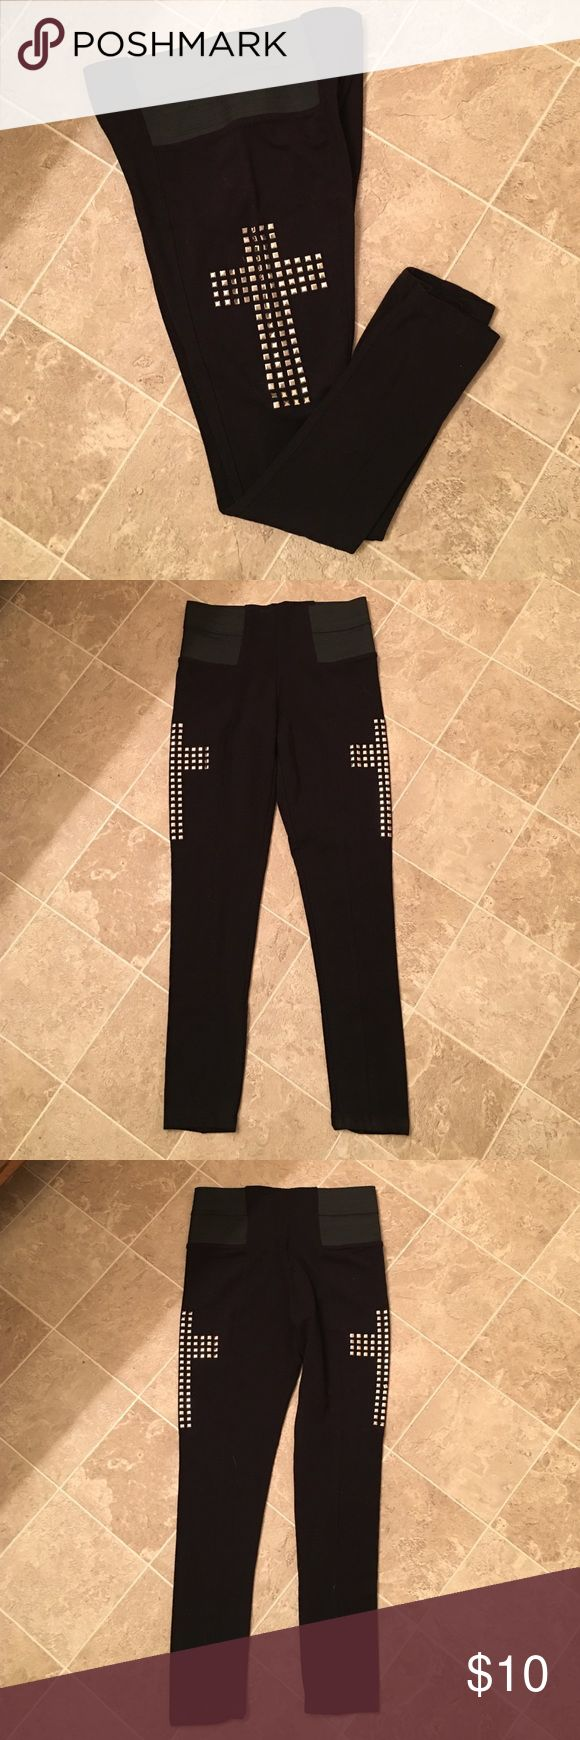 Thick black leggings w/cross studs on both sides Thick leggings (your underwear won't show when you bend over). Has elastic waist band. And cross studs on both thighs Rue 21 Pants Leggings